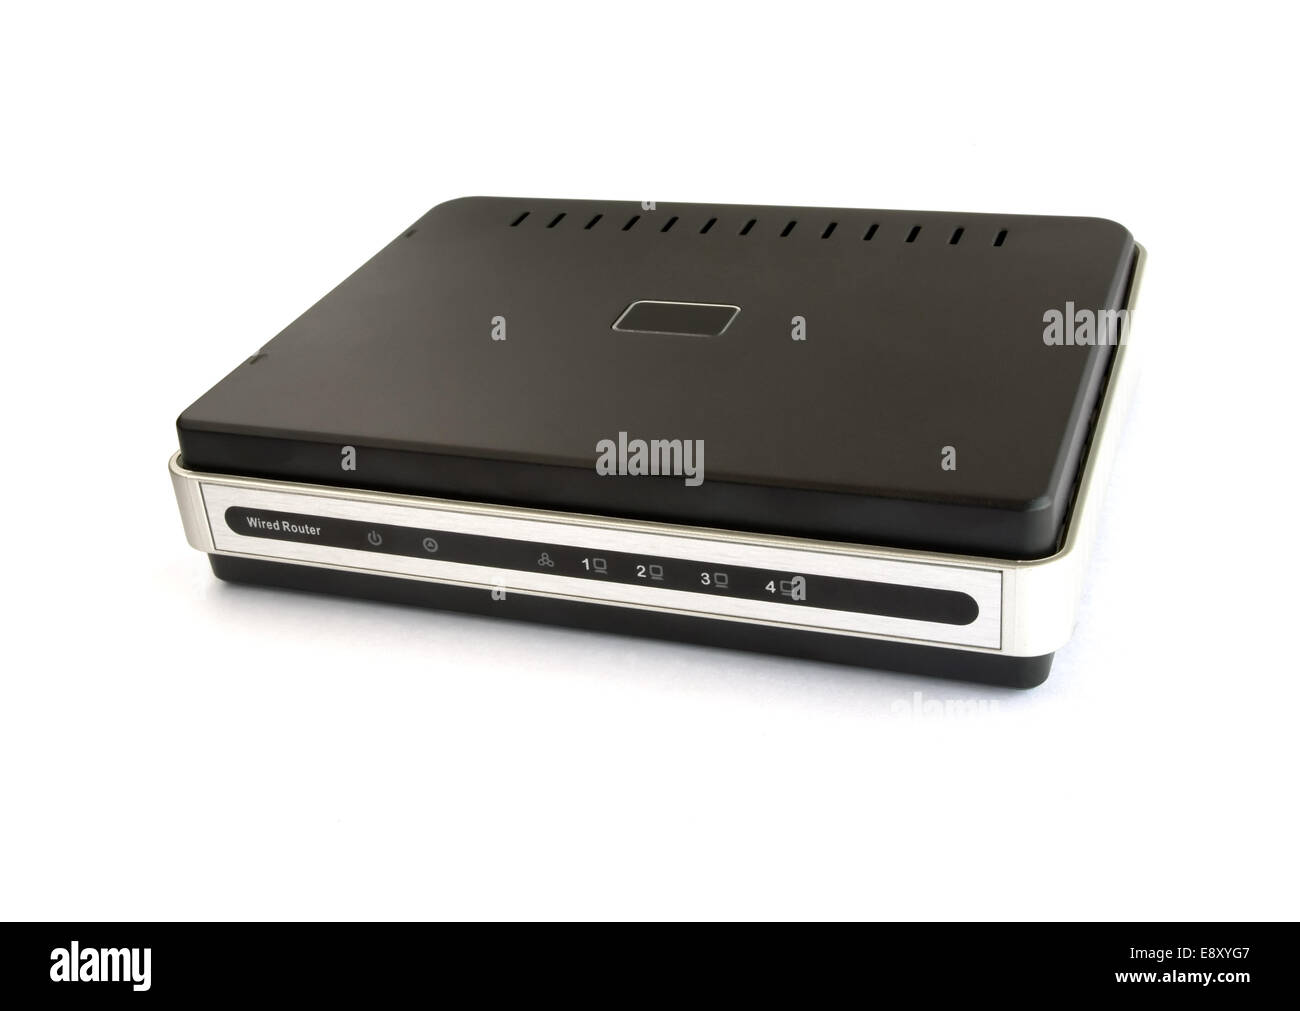 Broadband Router Stock Photos & Broadband Router Stock Images - Alamy